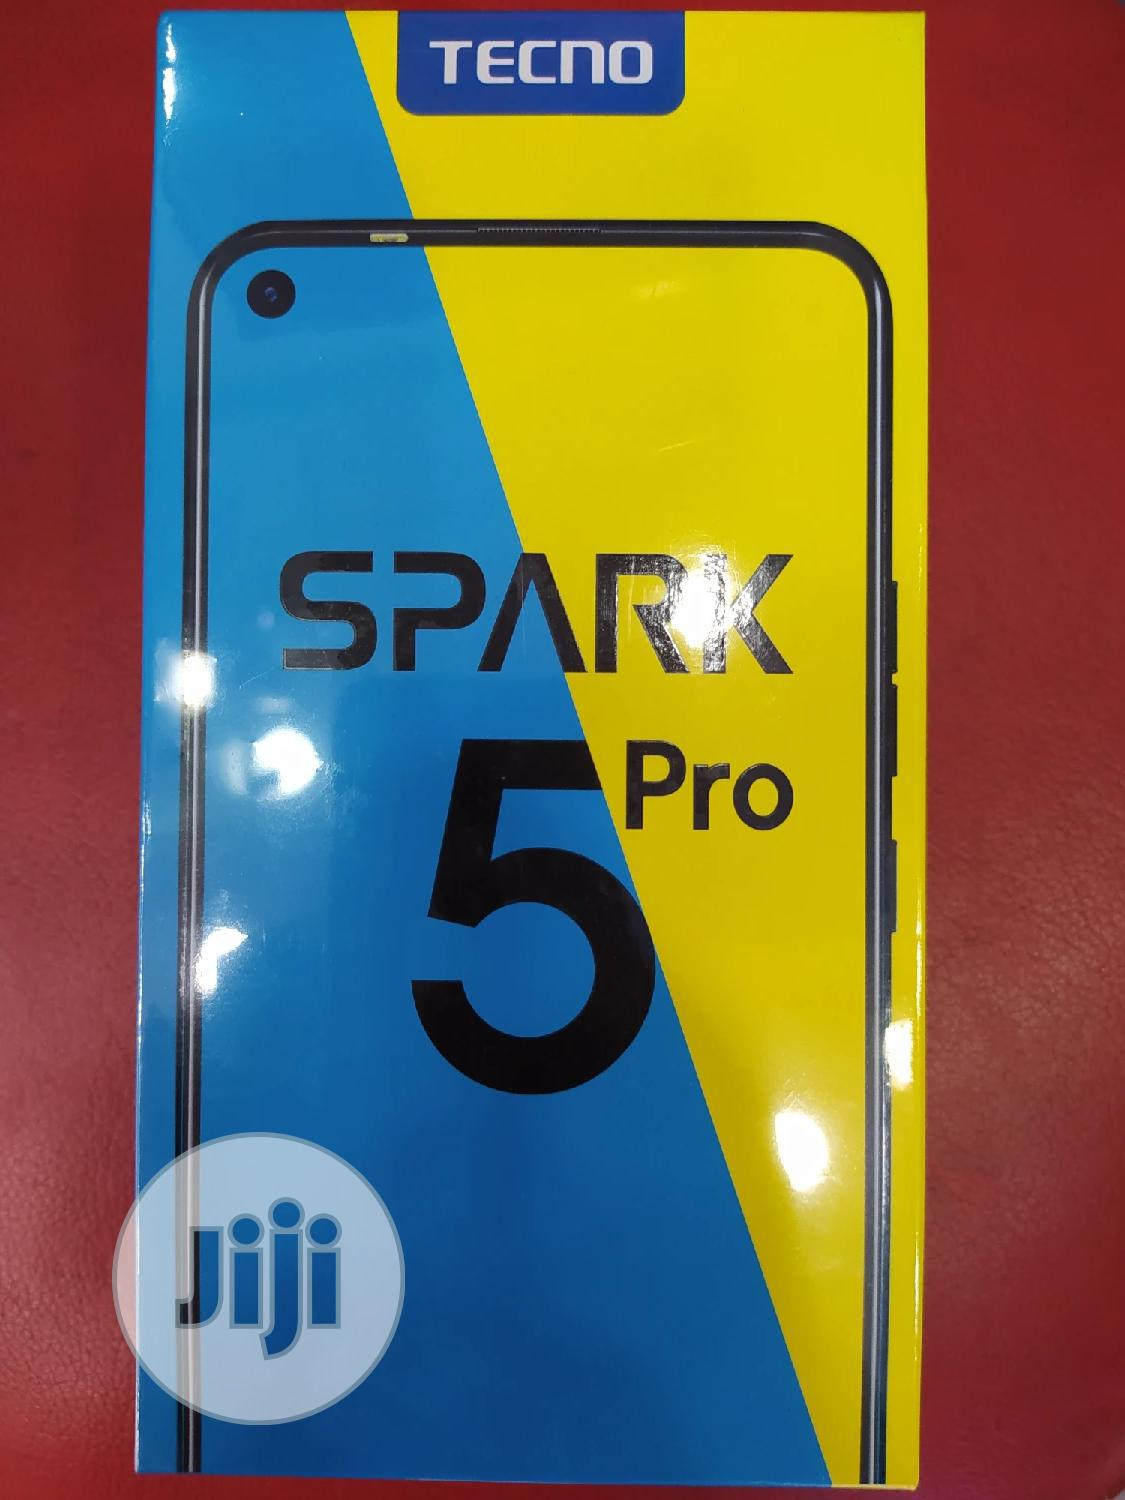 New Tecno Spark 5 Pro 64 GB Green | Mobile Phones for sale in Wuse 2, Abuja (FCT) State, Nigeria